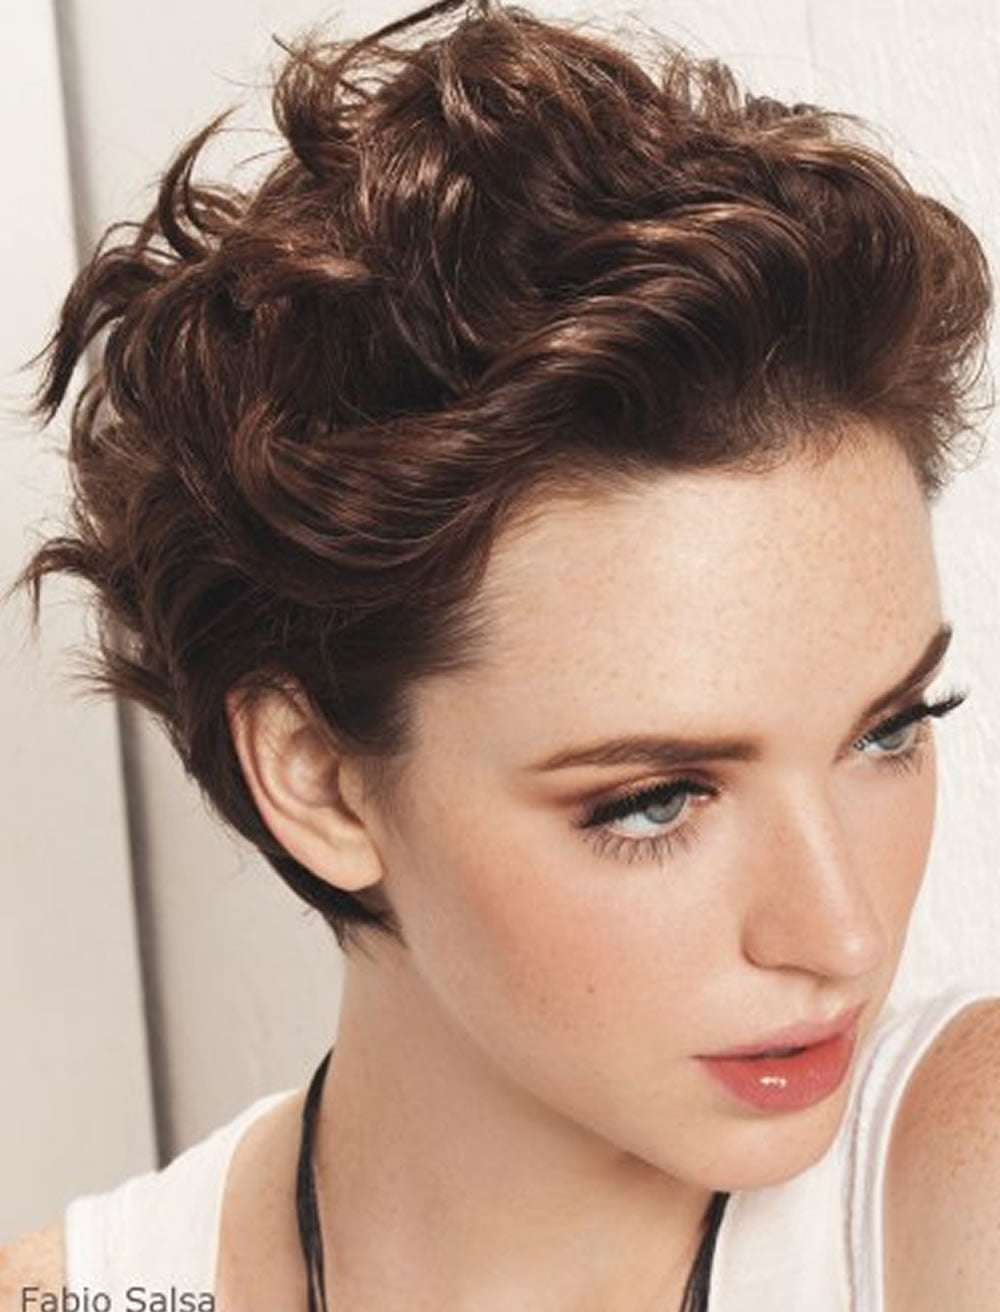 Top 30 Short Haircuts & Hairstyle ideas for Women   Page 2 ...